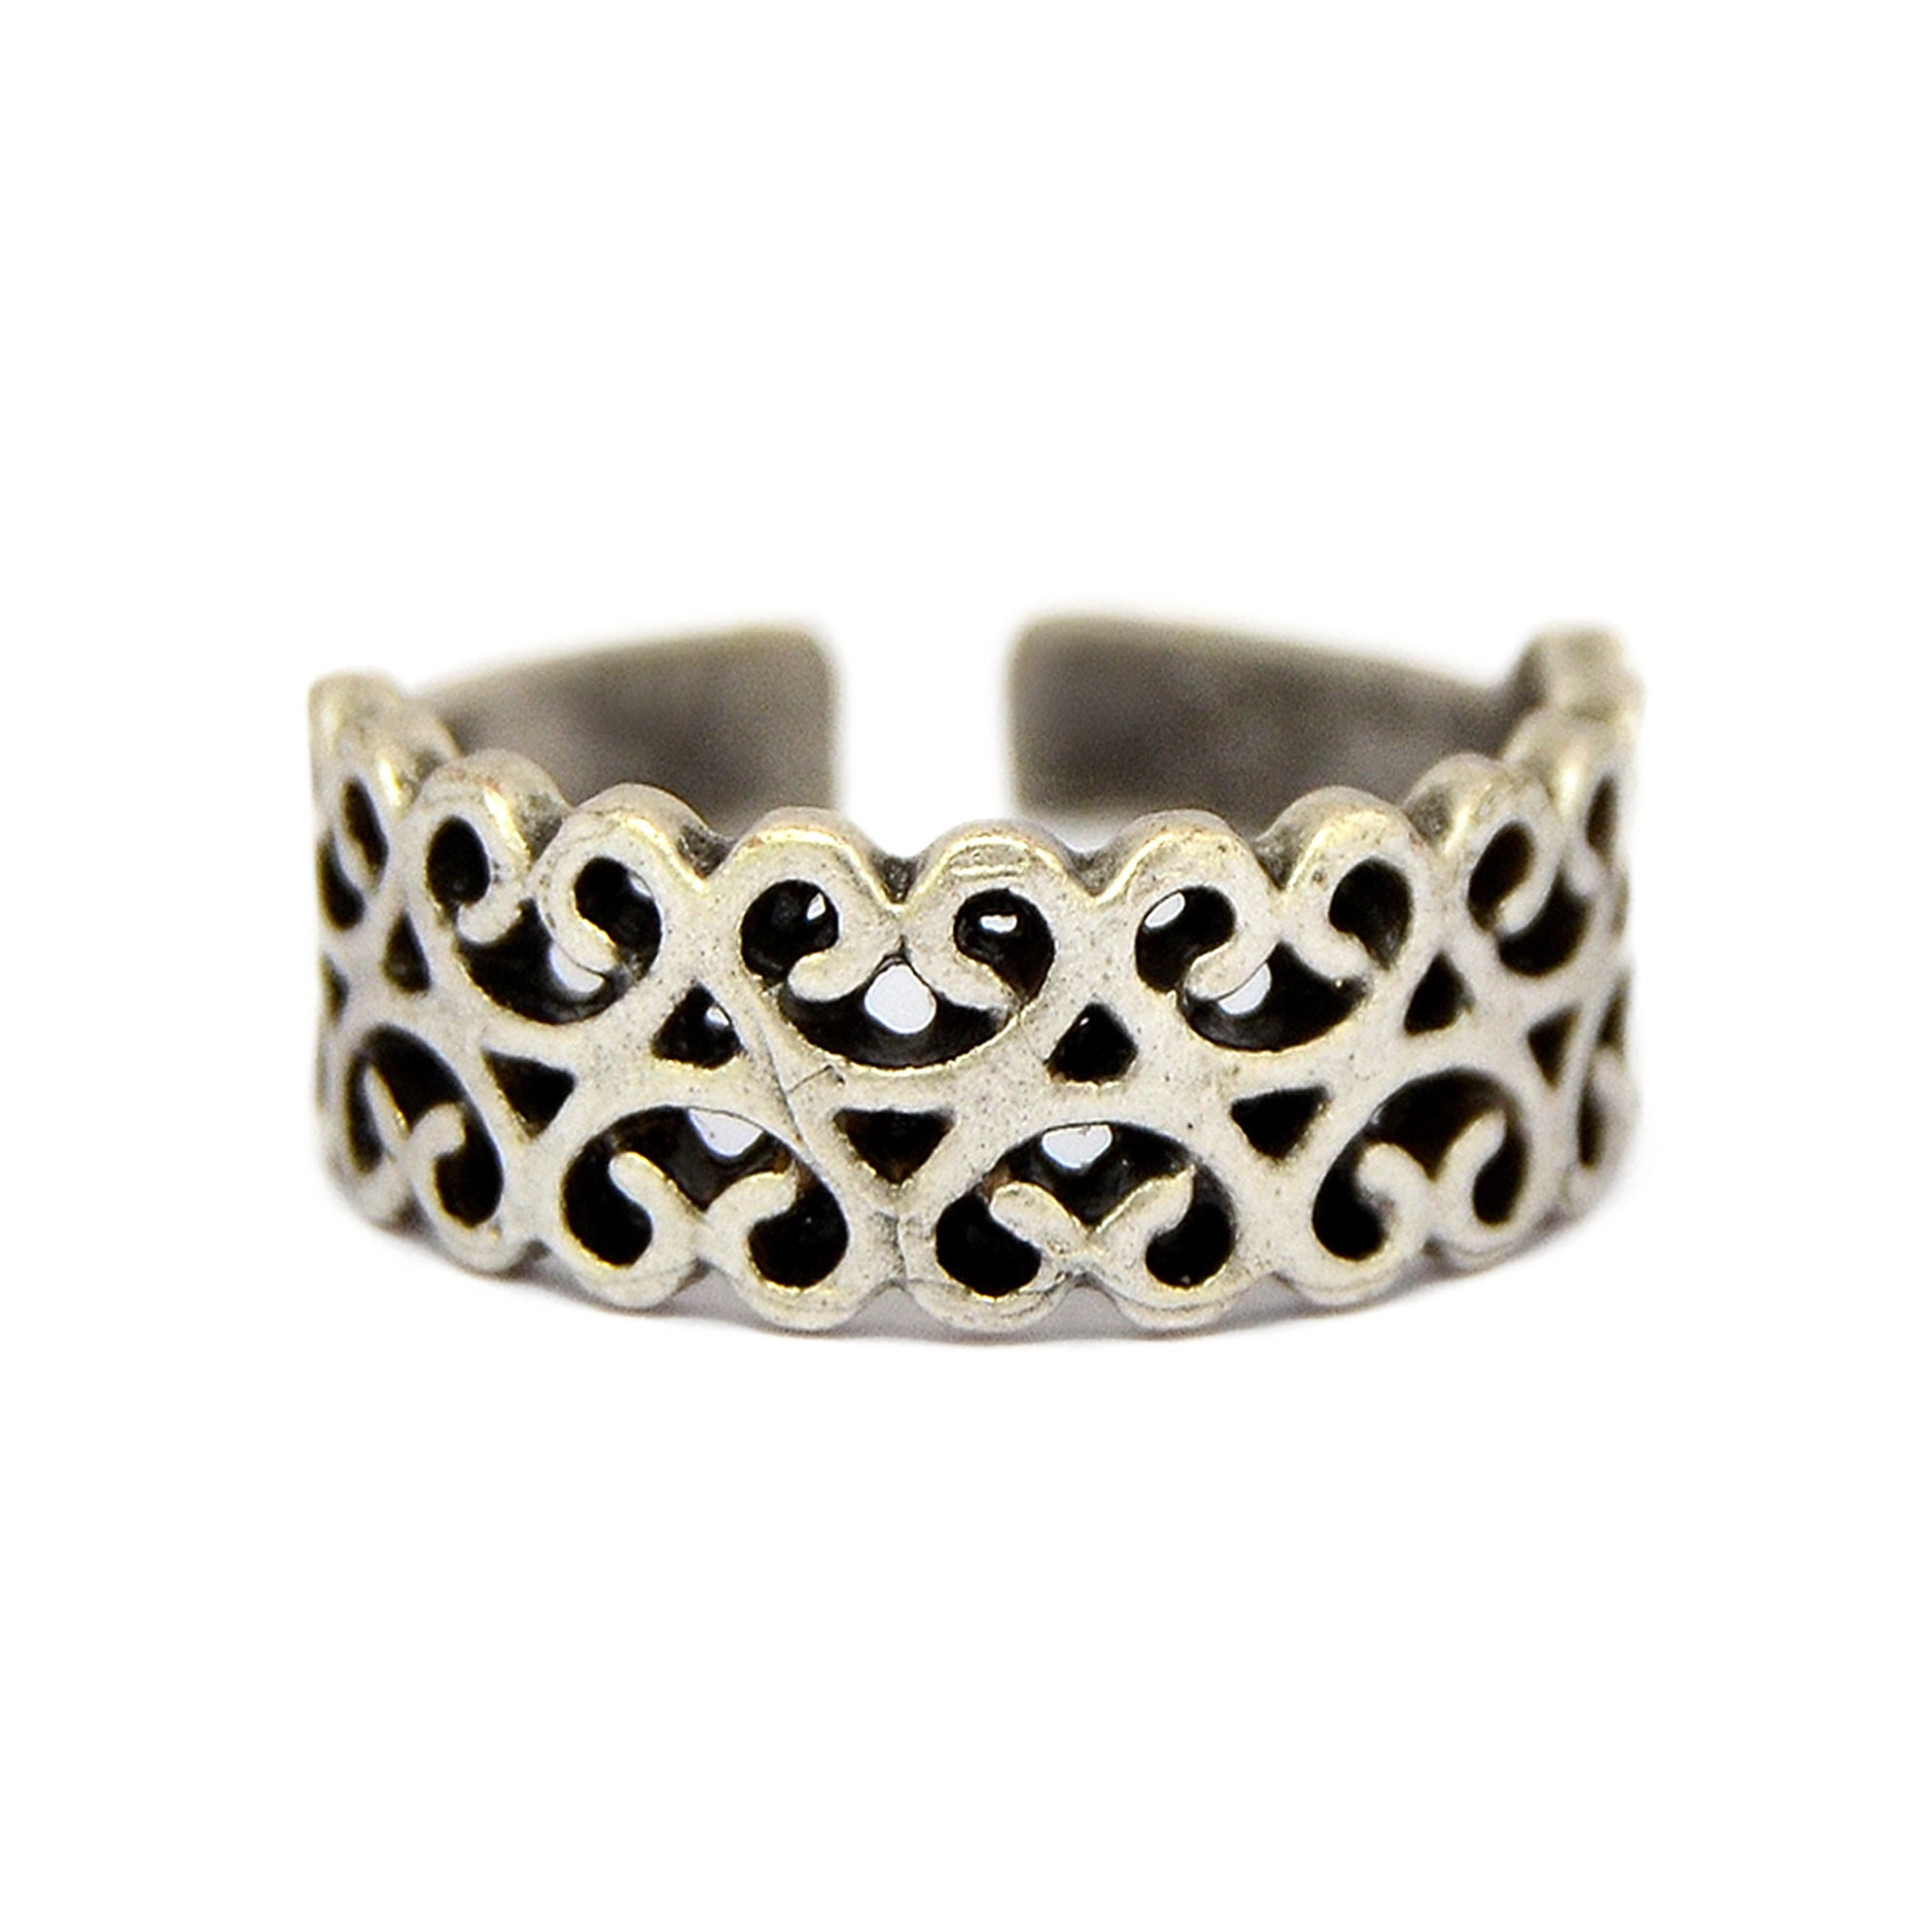 Turkish filigree ring